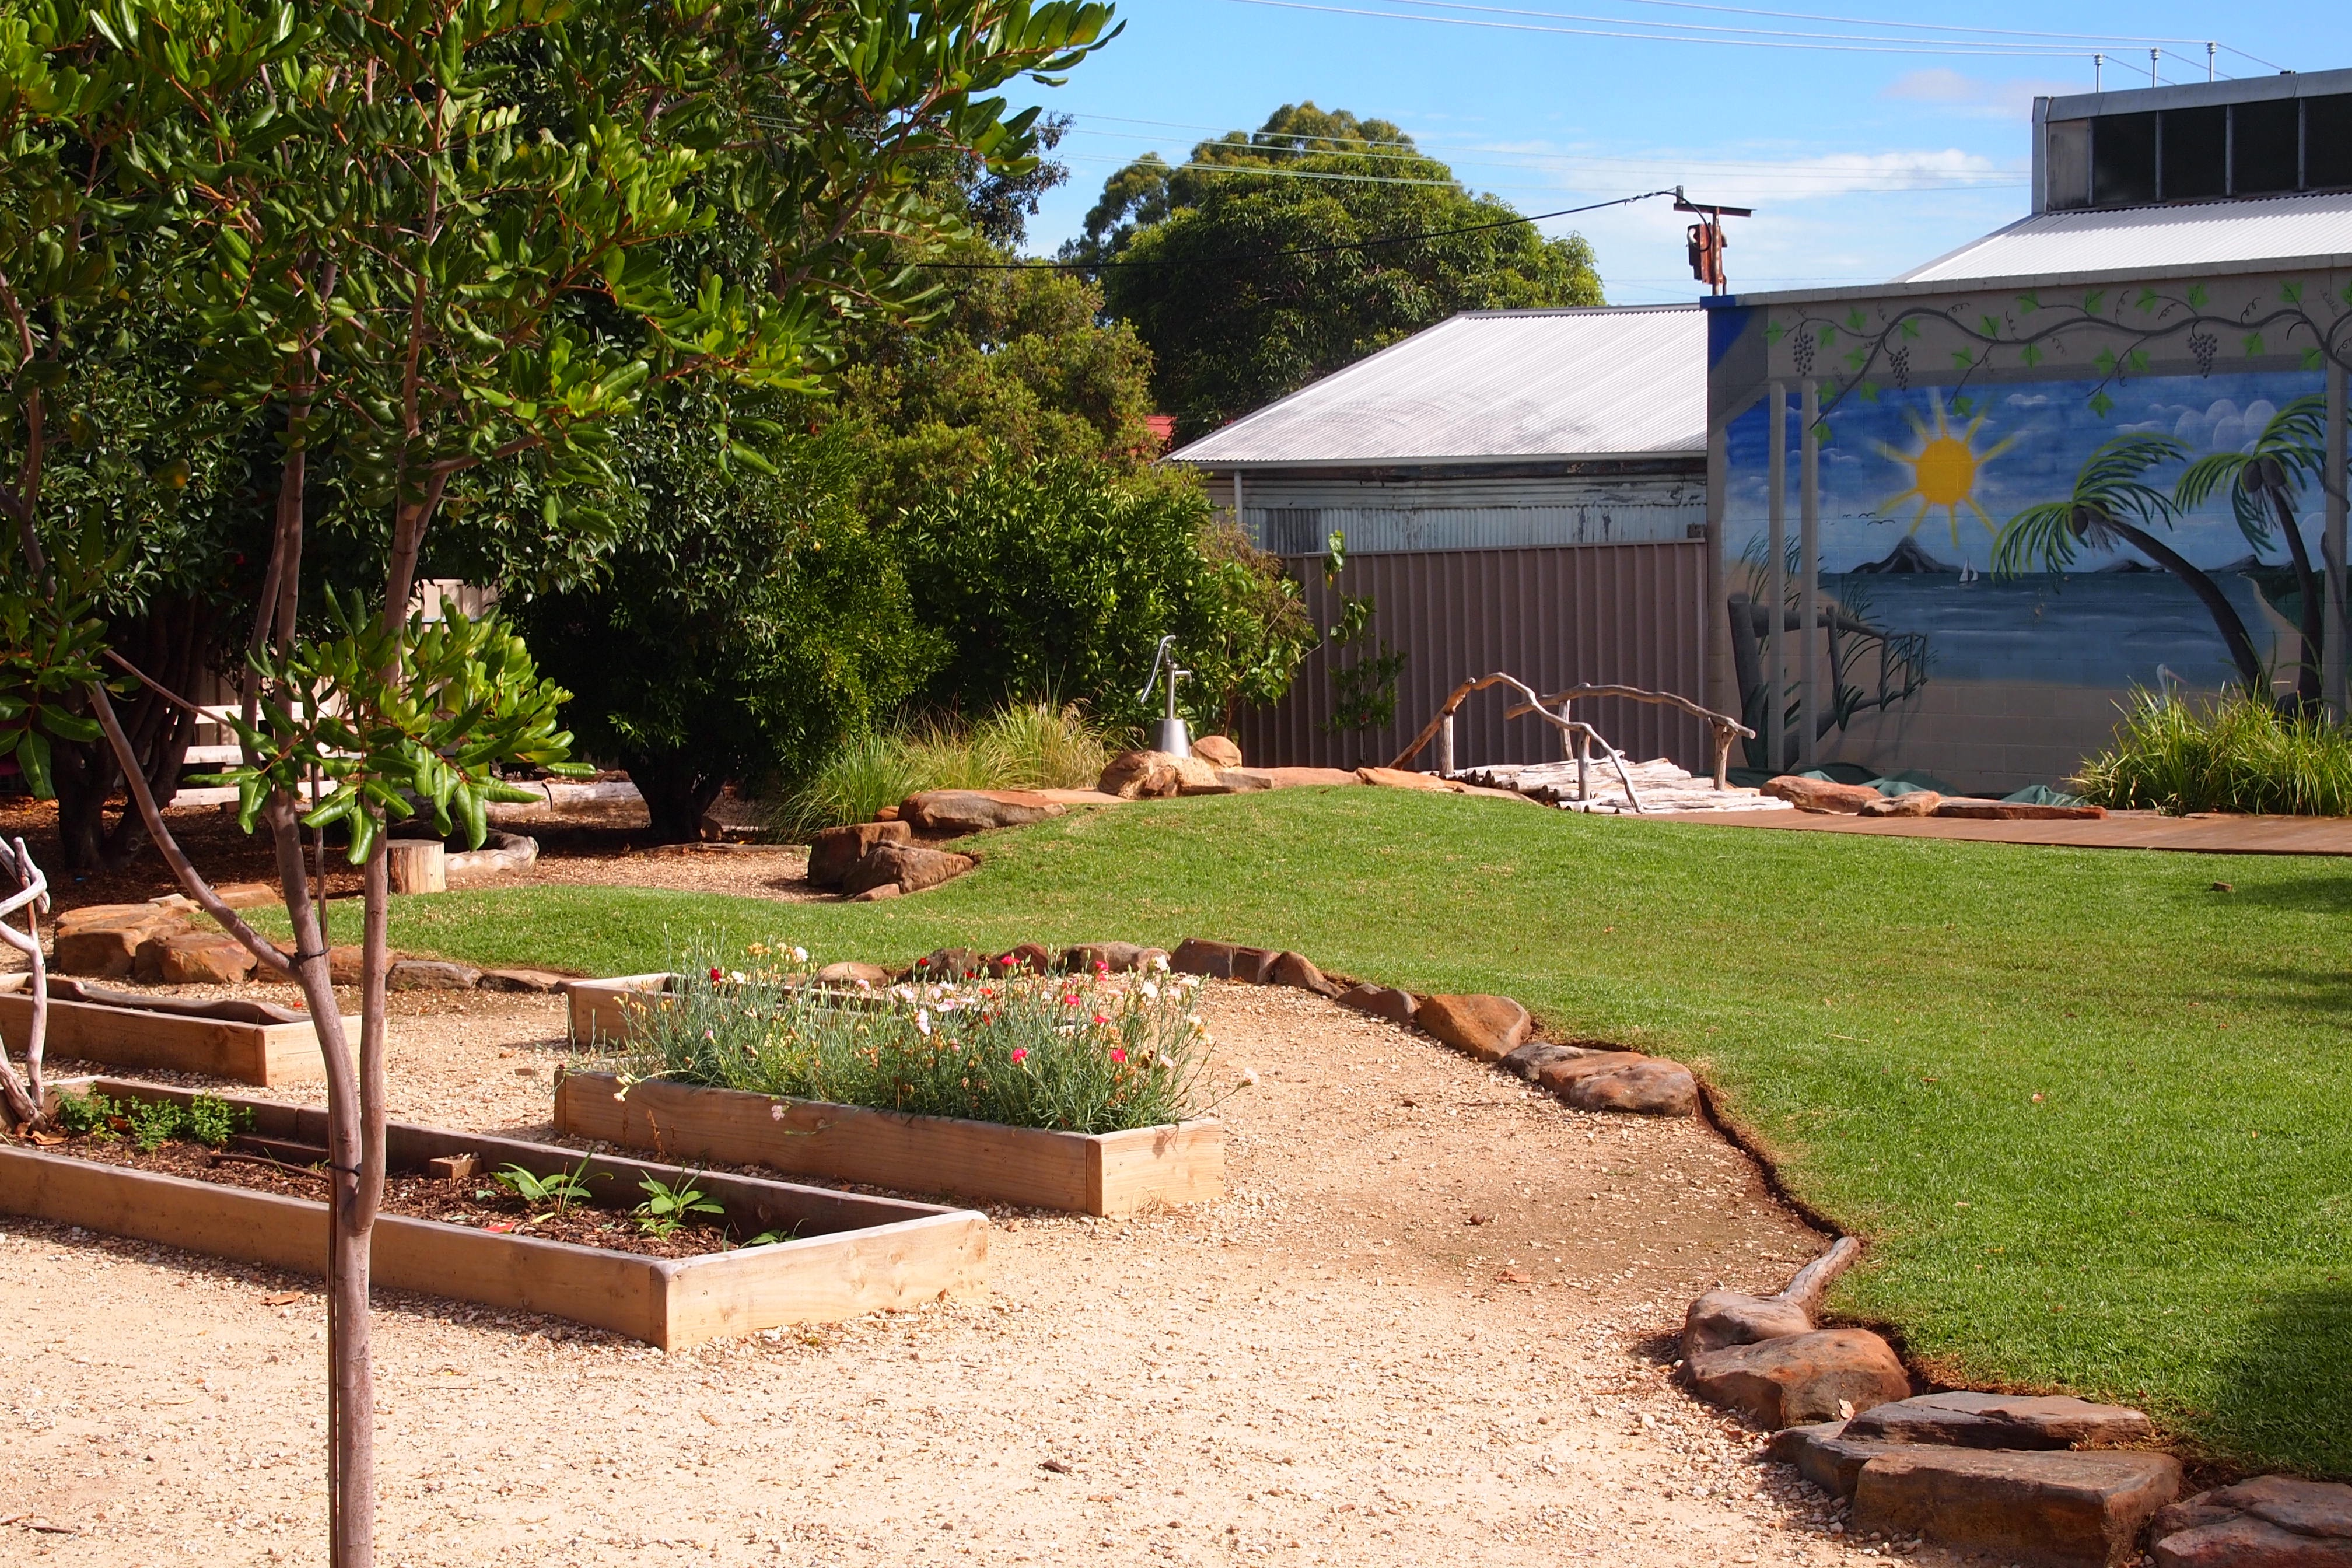 Our stunning nature playscape